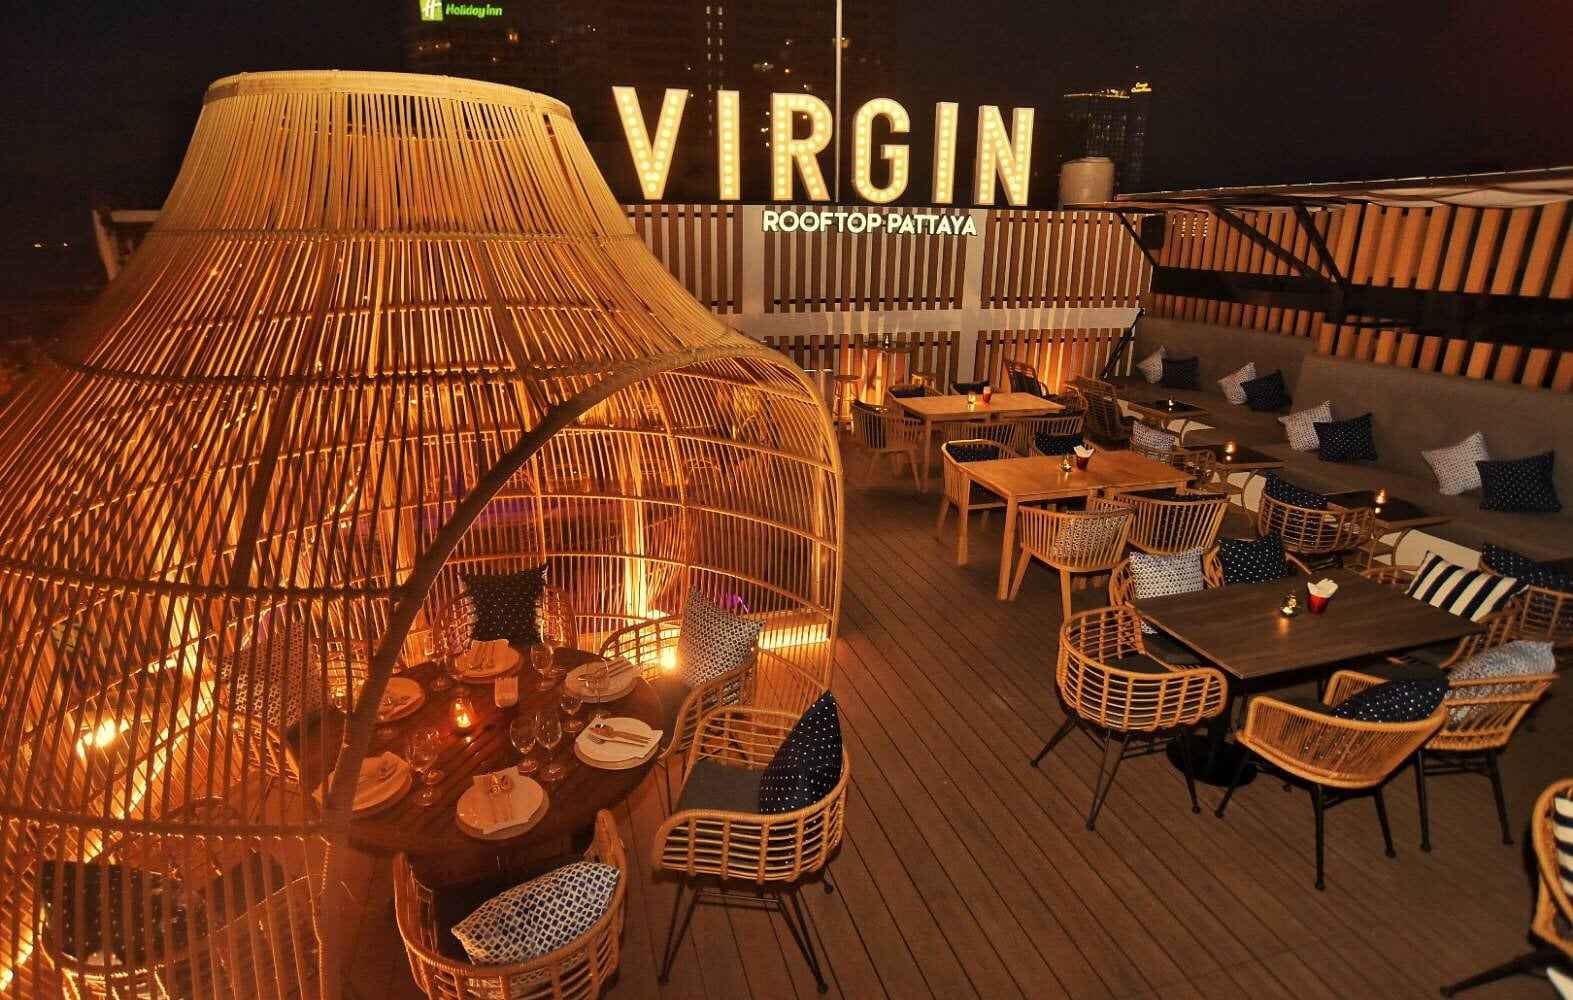 Virgin Logo and cozy seating